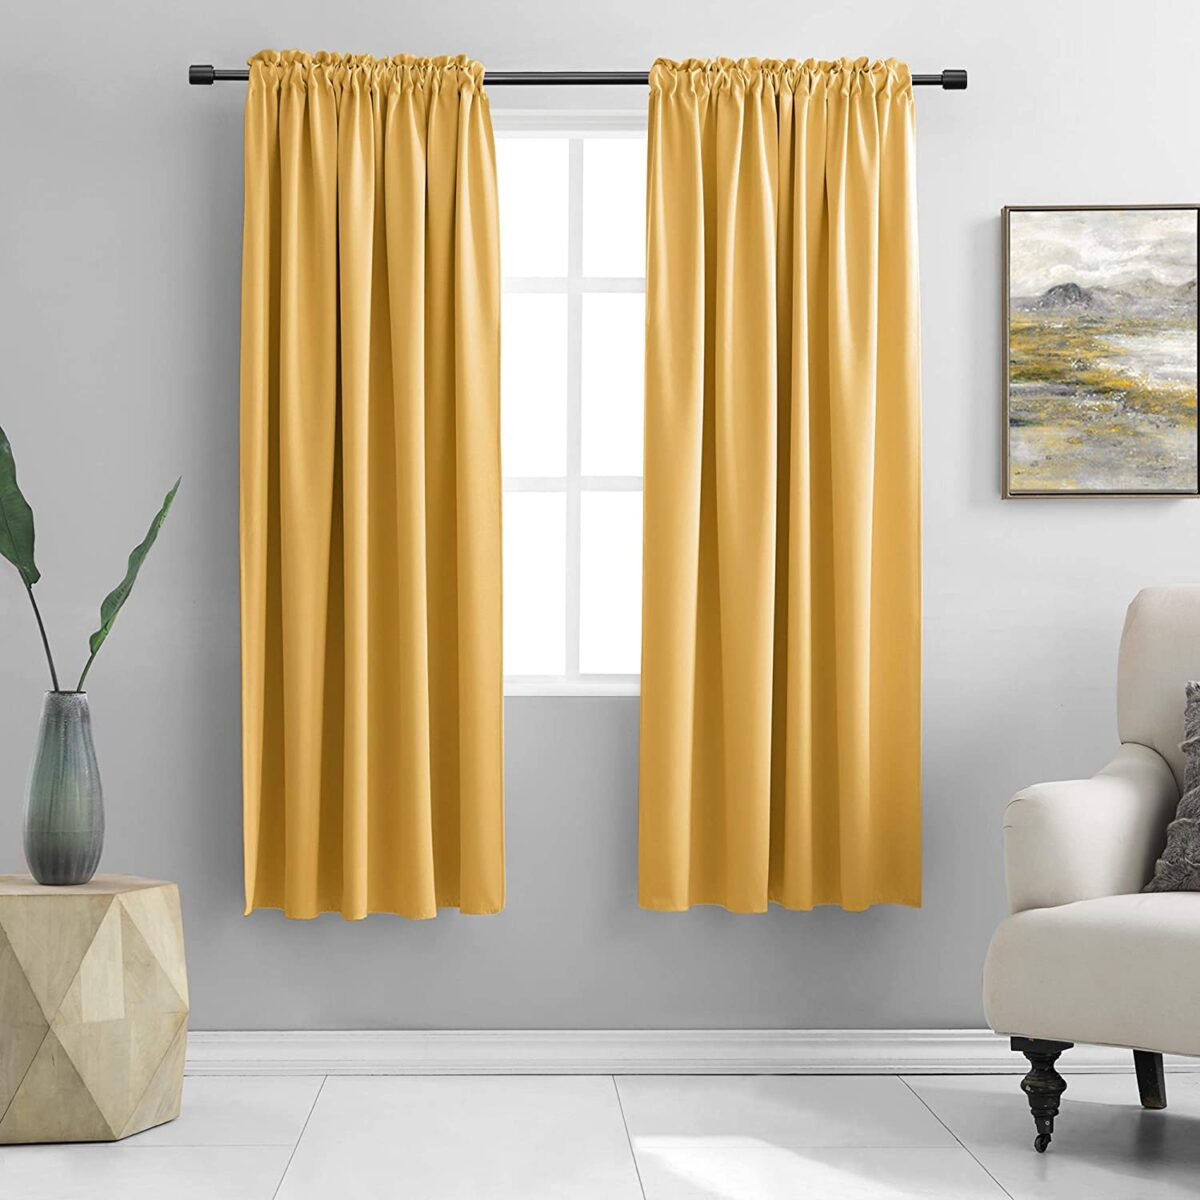 colors-curtains-trends-2021-yellow1